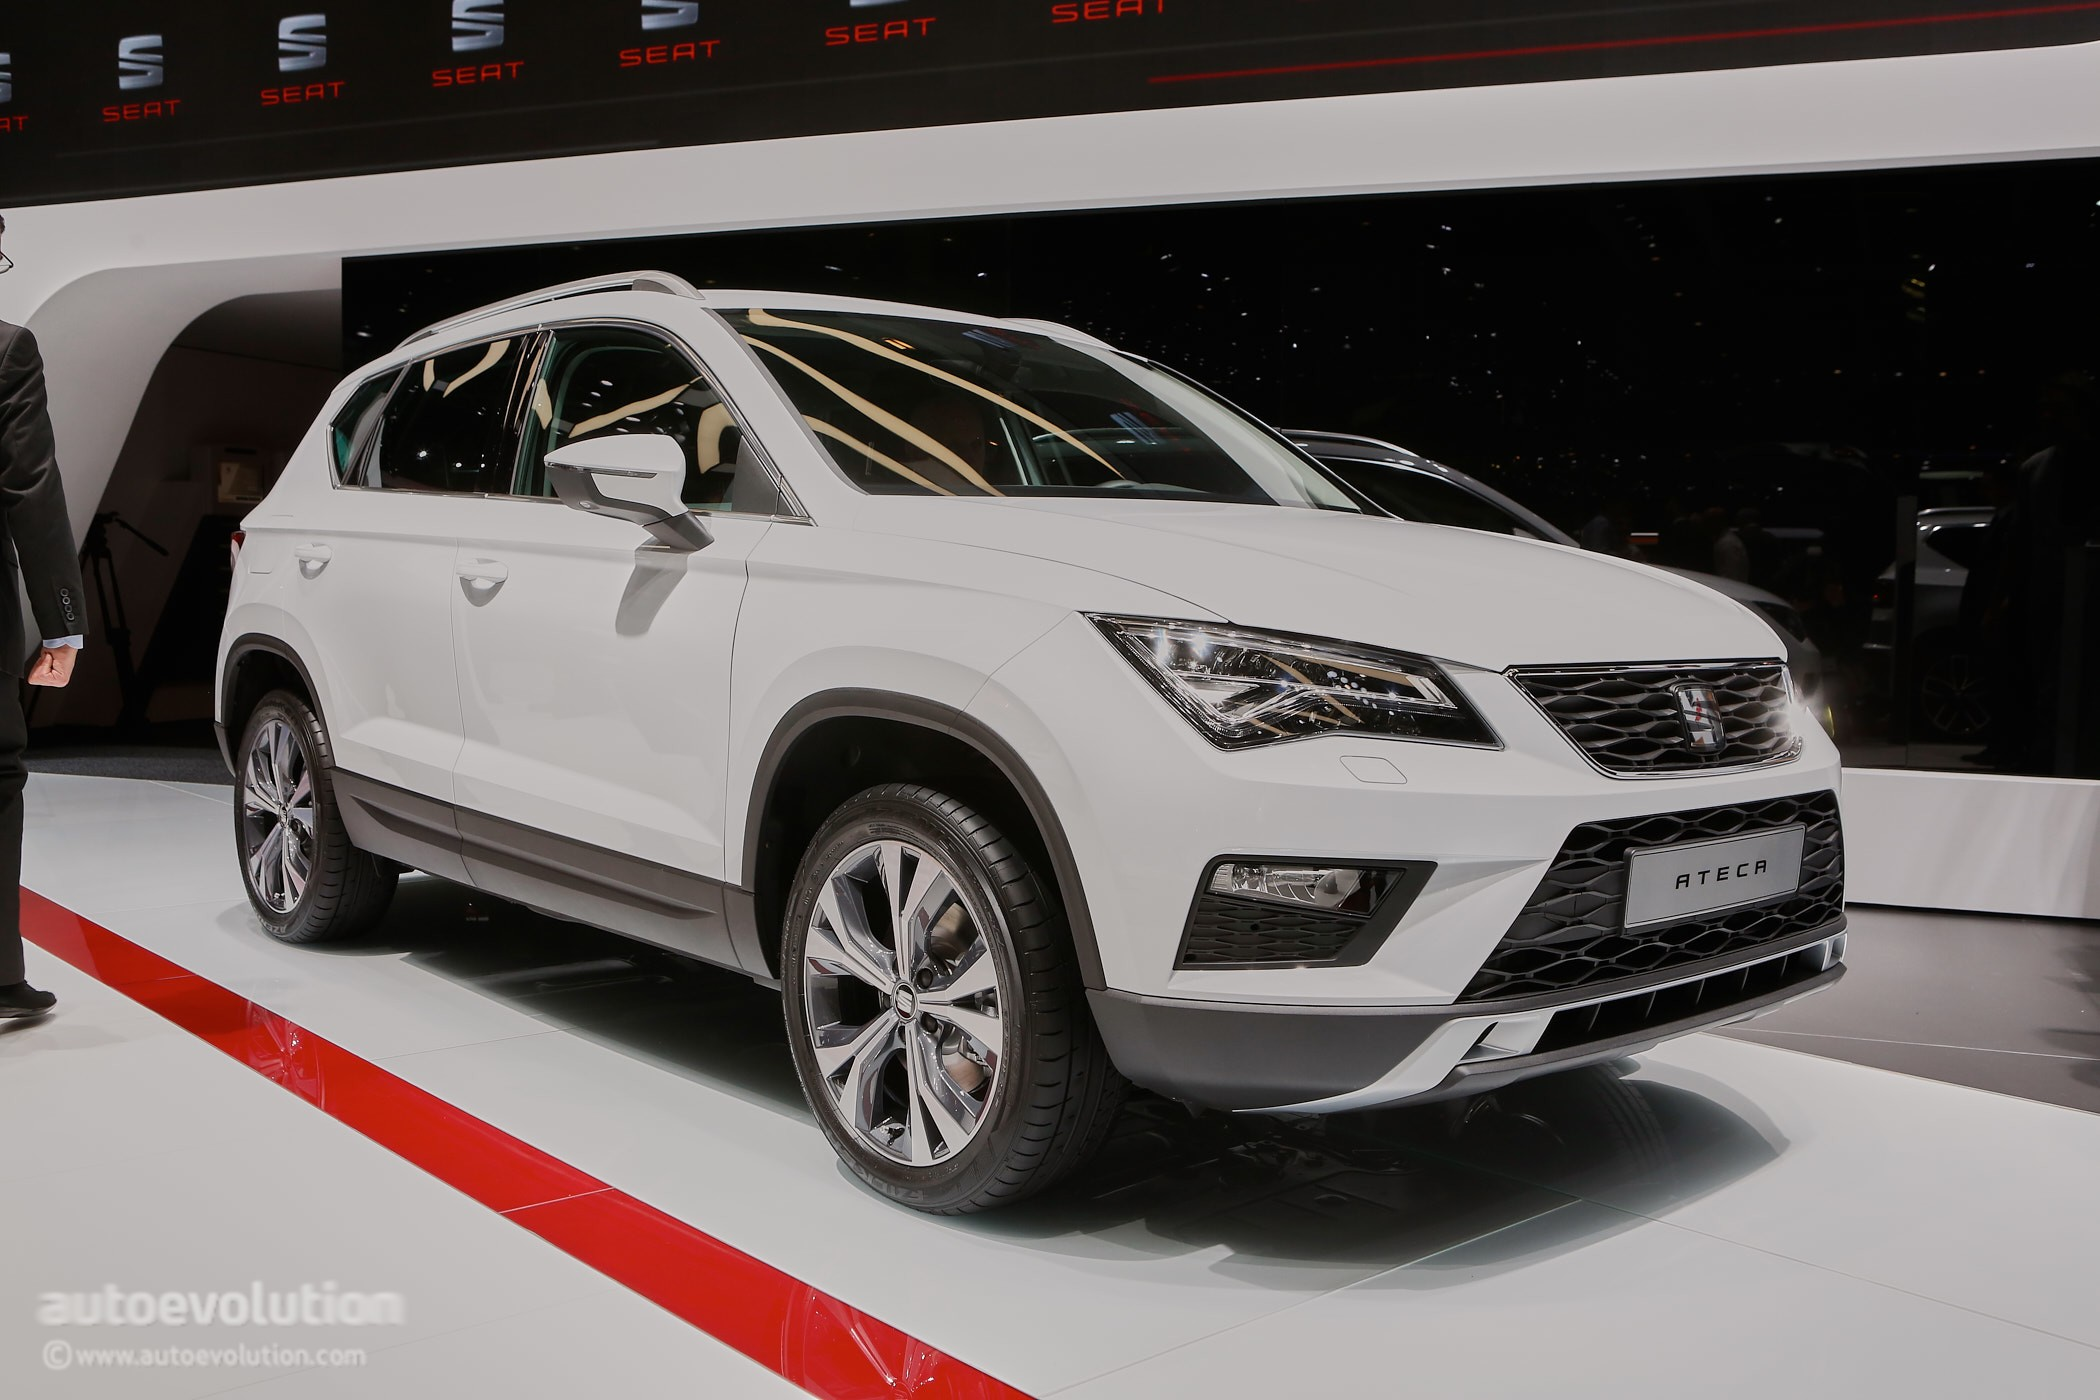 2016 Seat Ateca Suv Makes Official Debut At Geneva